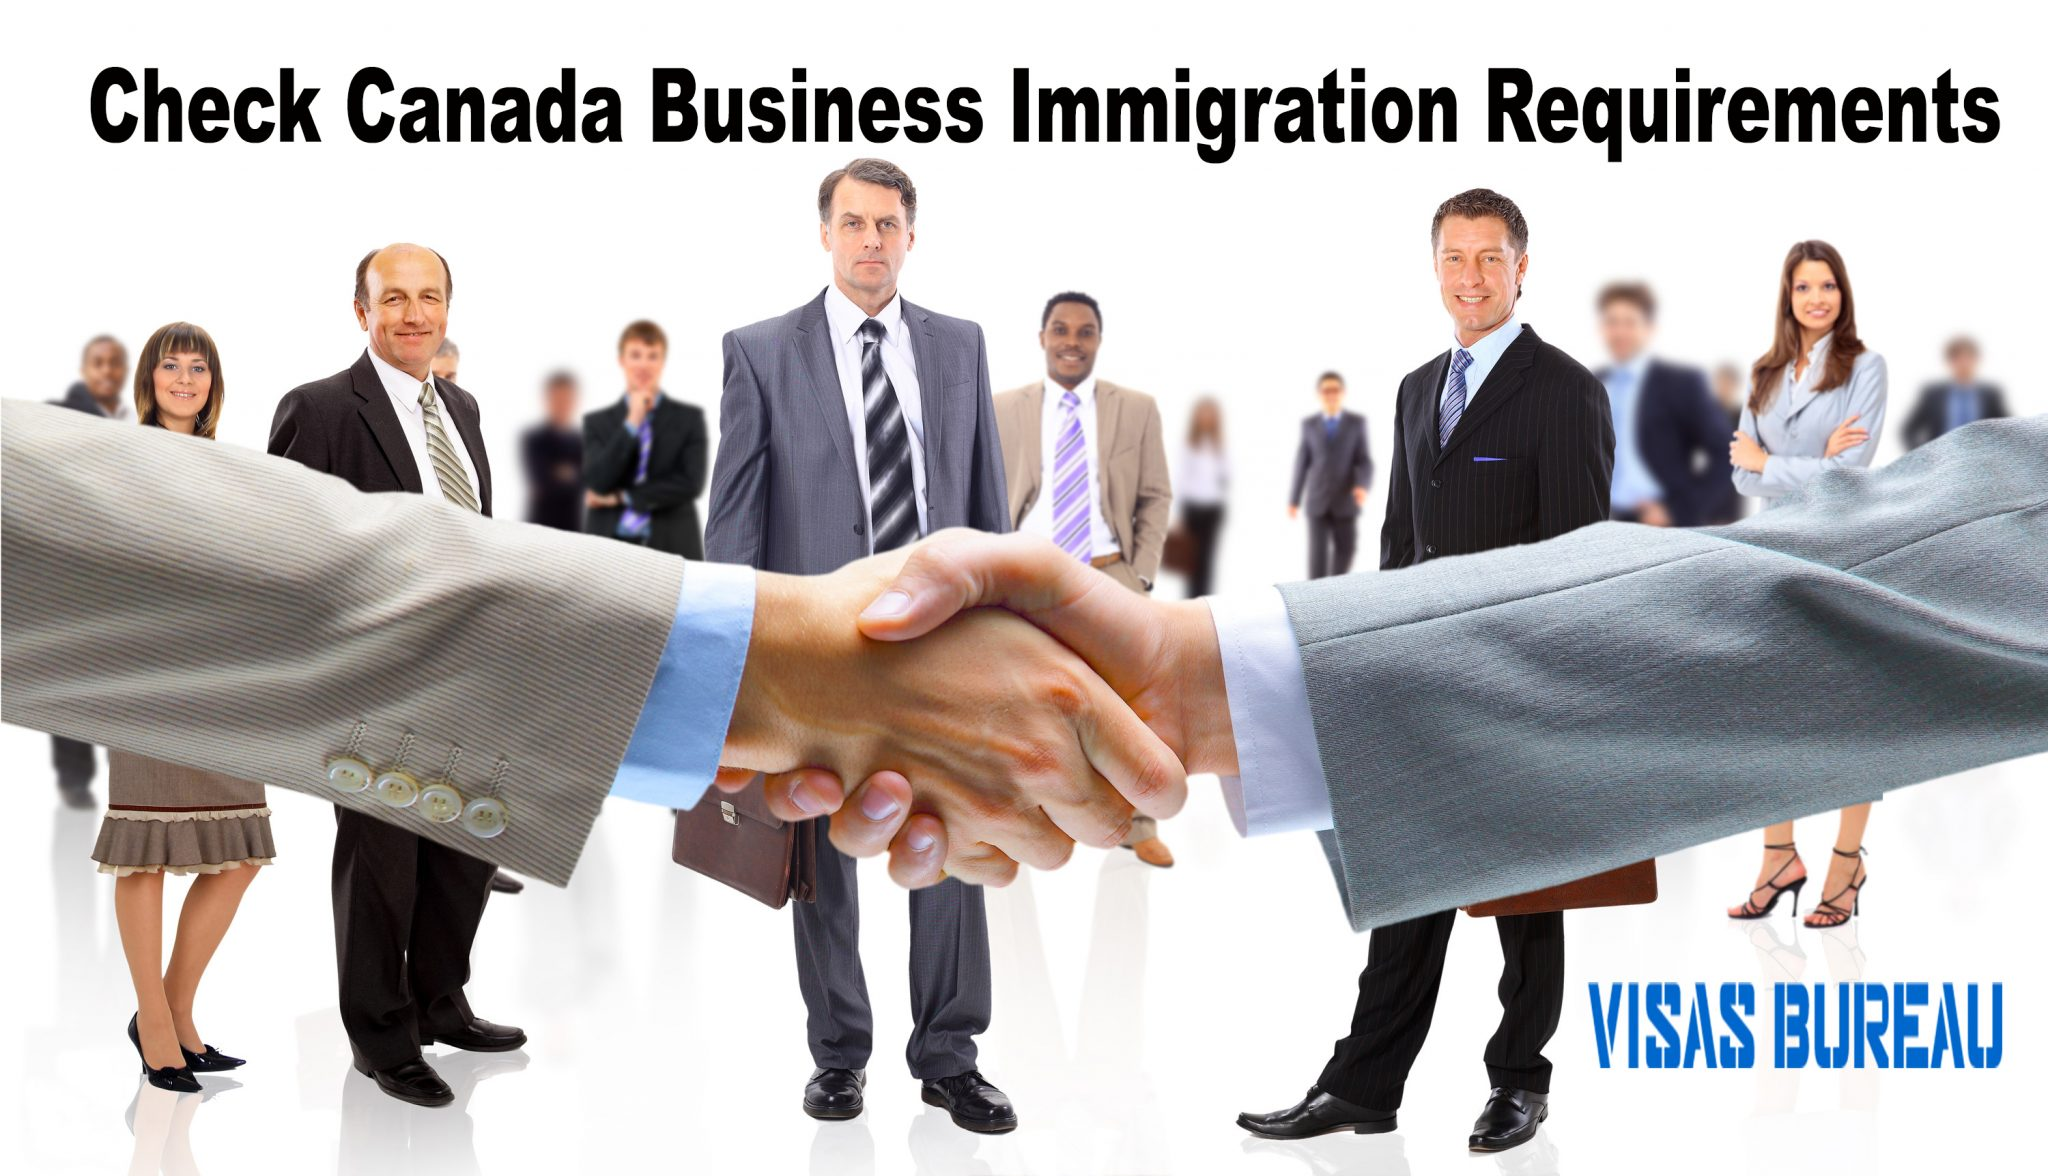 Canada Business Immigration